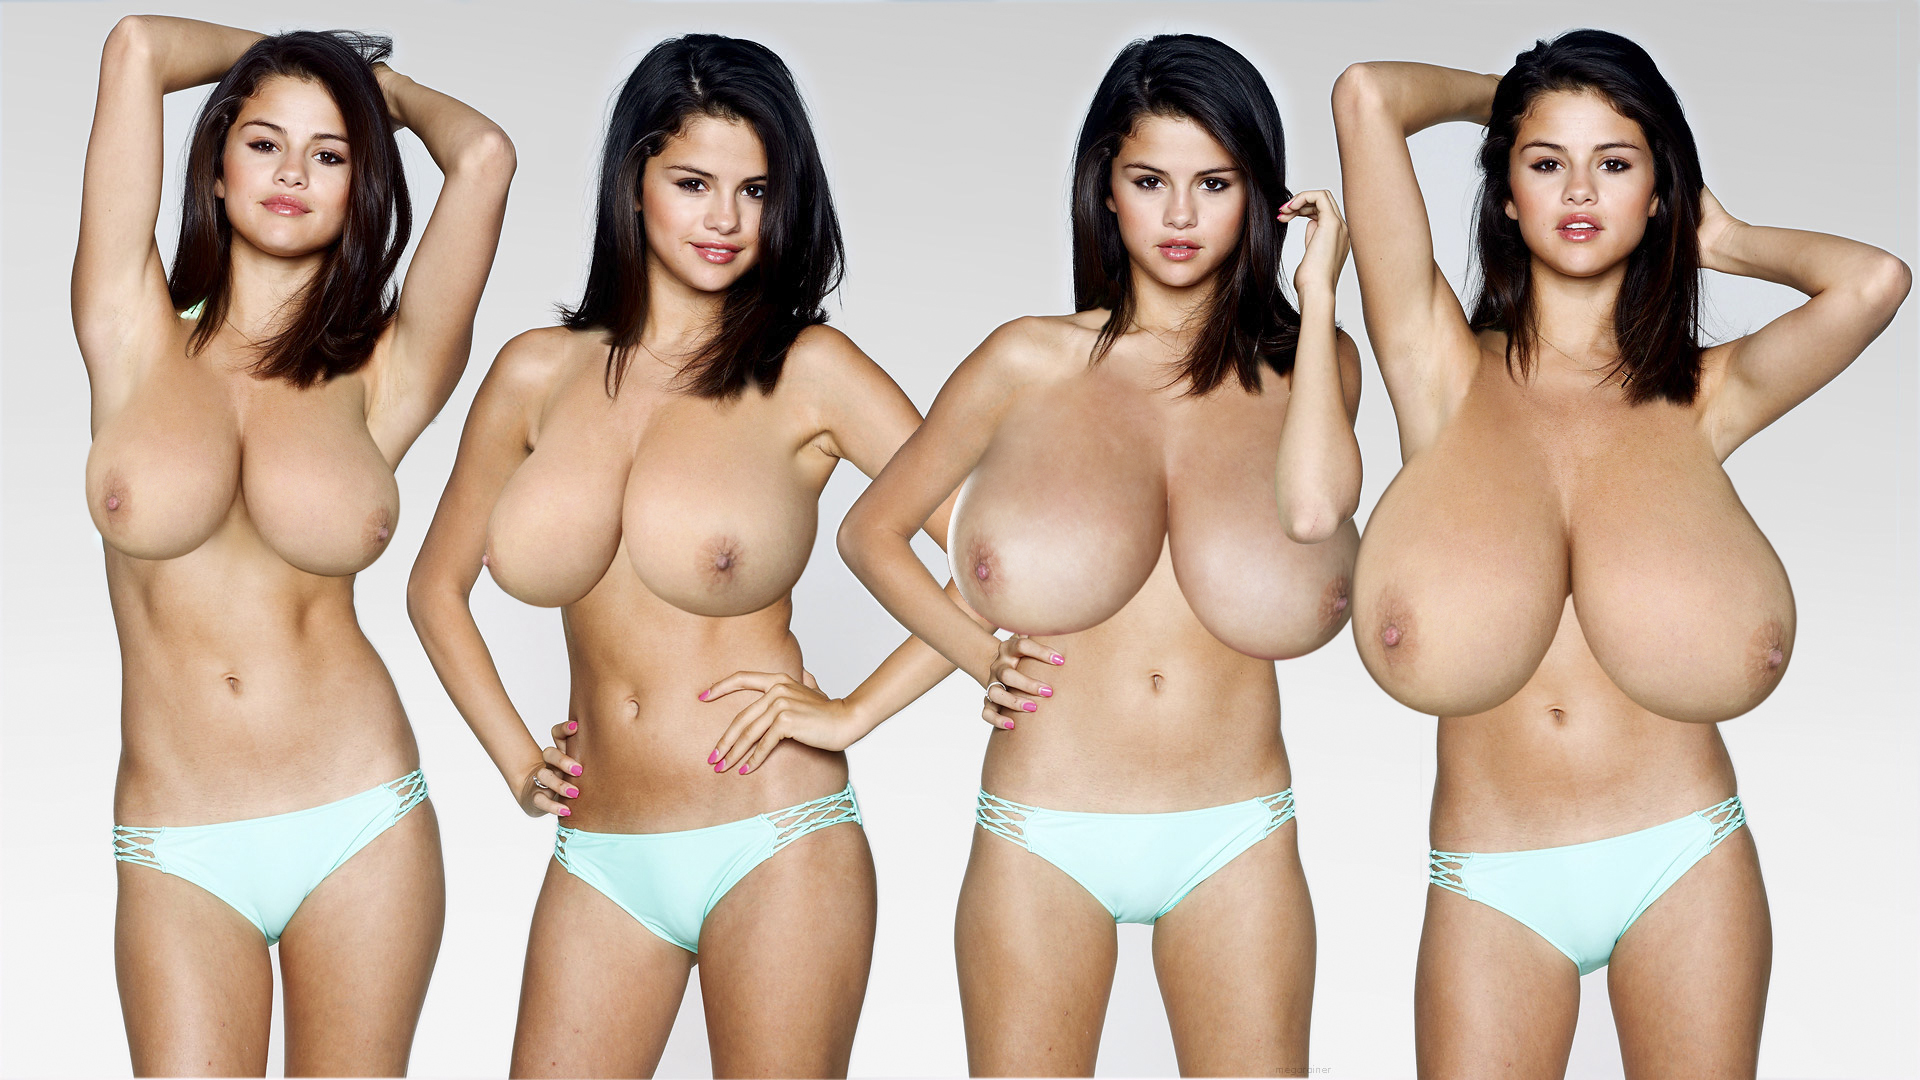 selena-gomez-spring-breakers-wallpaper - badmojo